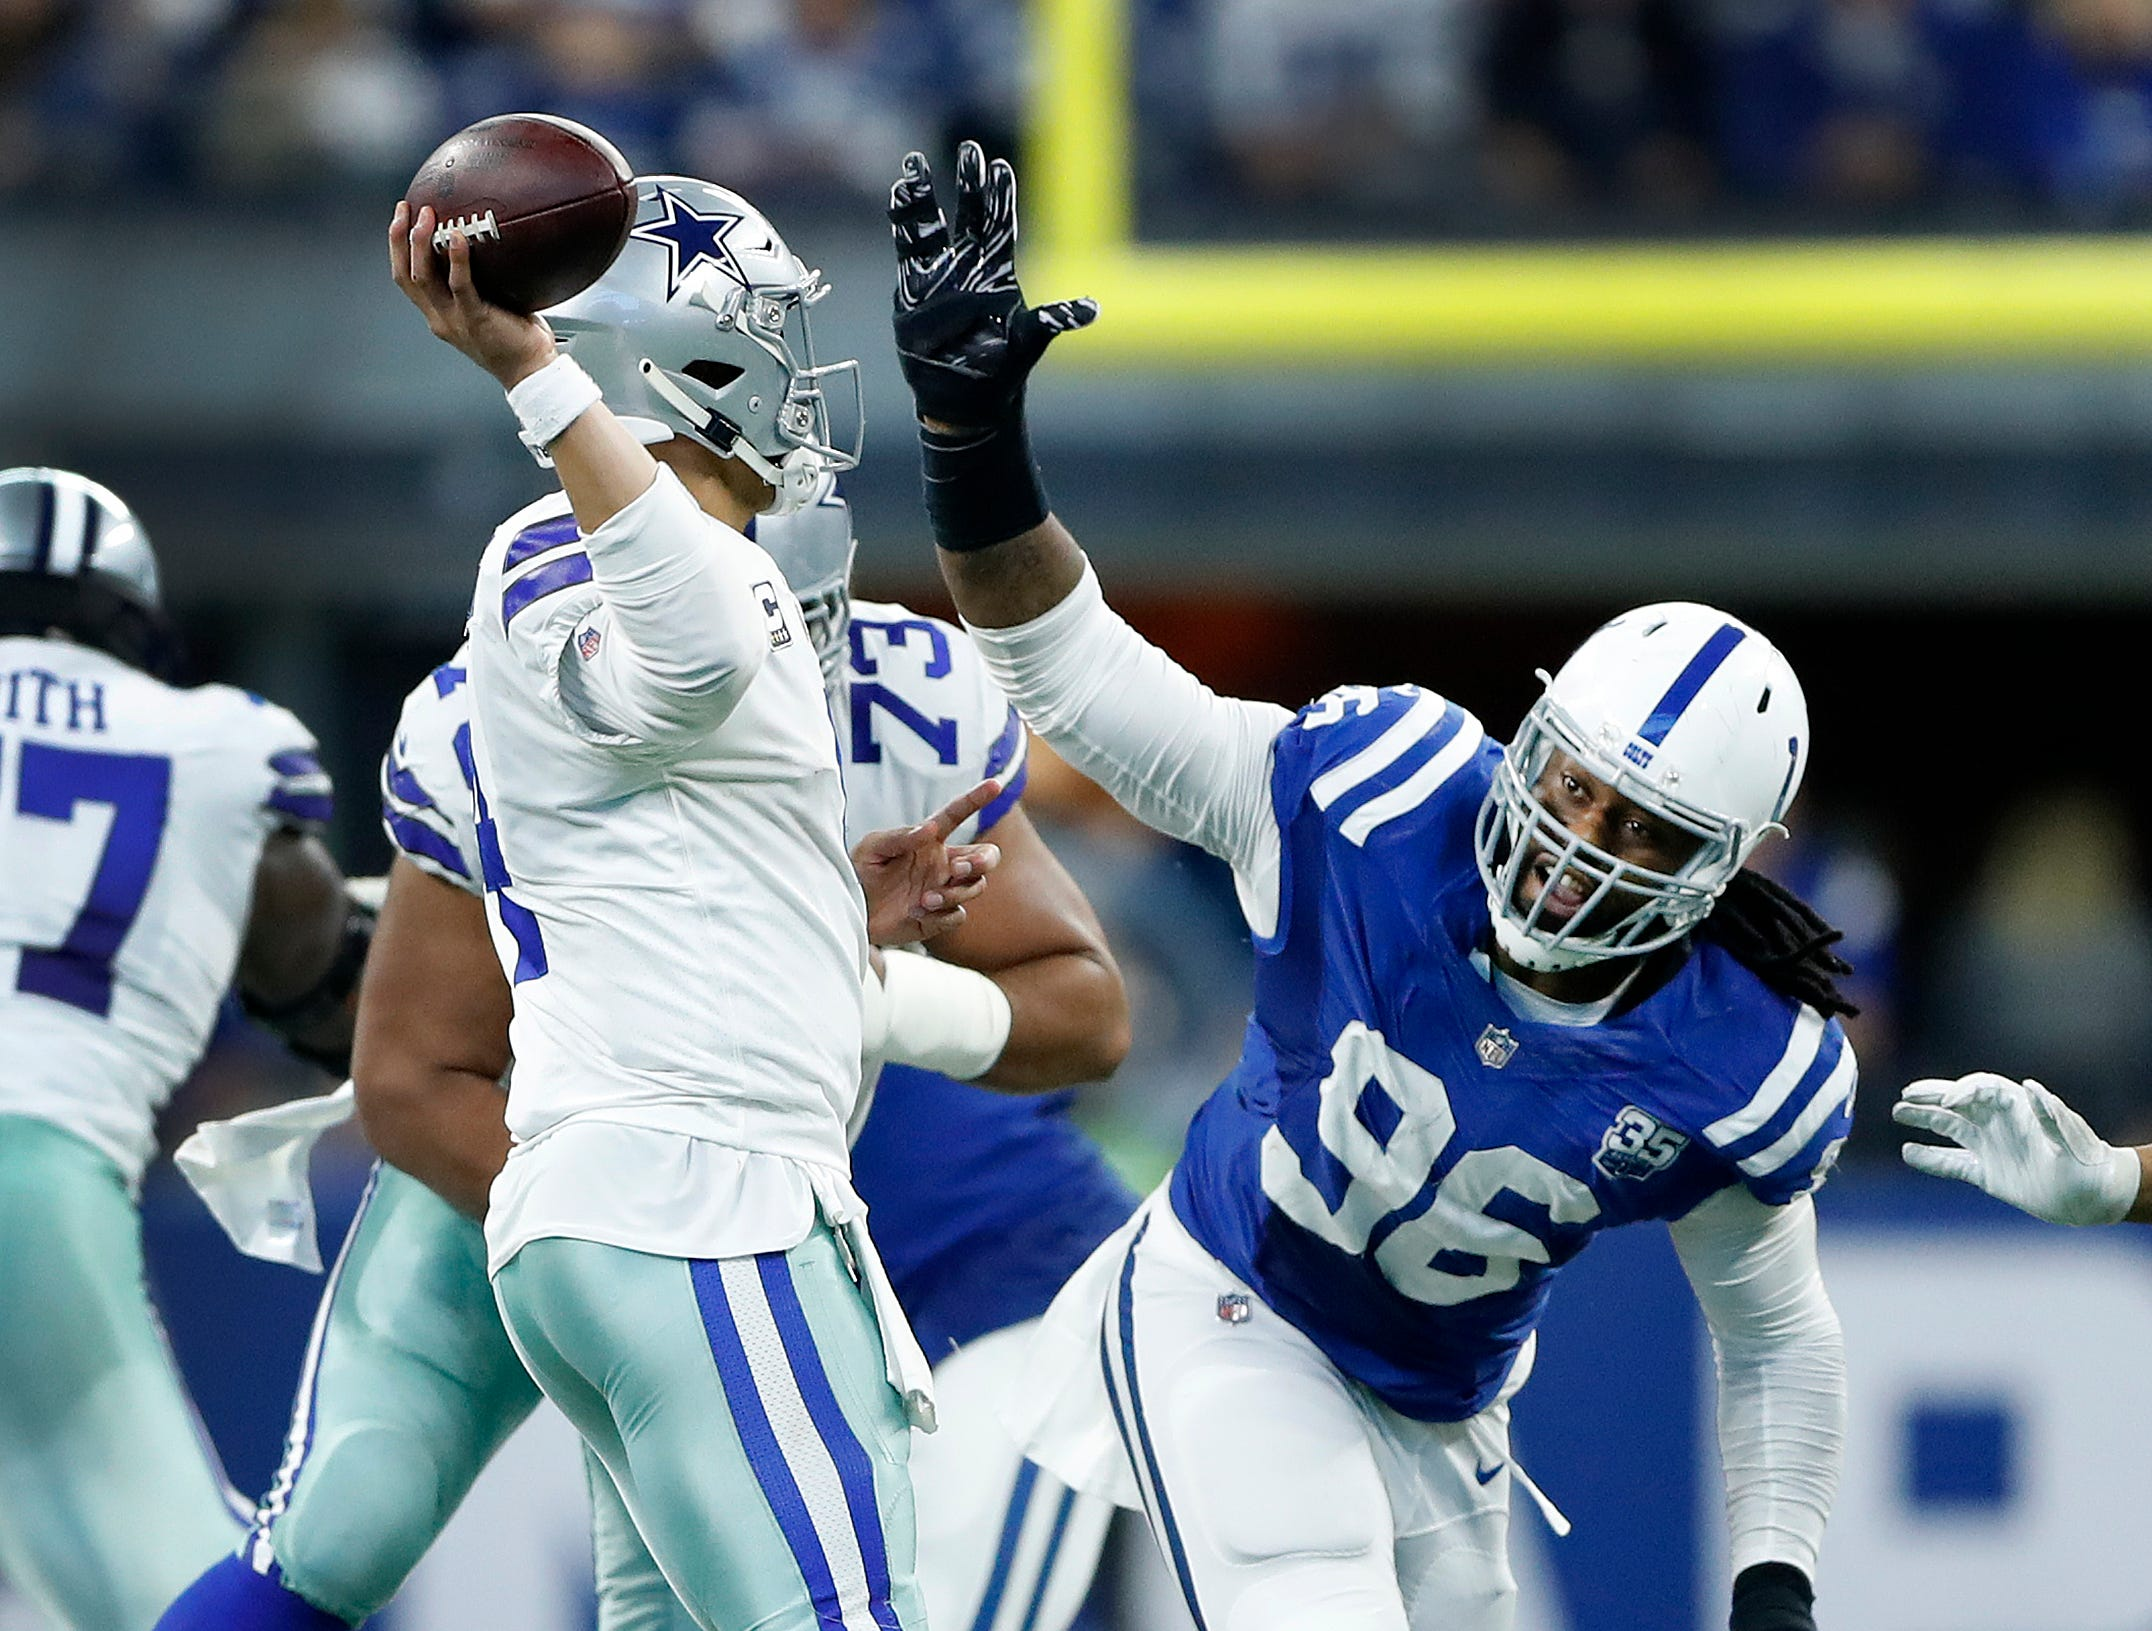 Indianapolis Colts defensive tackle Denico Autry (96) pressures Dallas Cowboys quarterback Dak Prescott (4) in the second half of their game at Lucas Oil Stadium on Sunday, Dec. 16, 2018. The Colts shut-out the Cowboys 23-0.